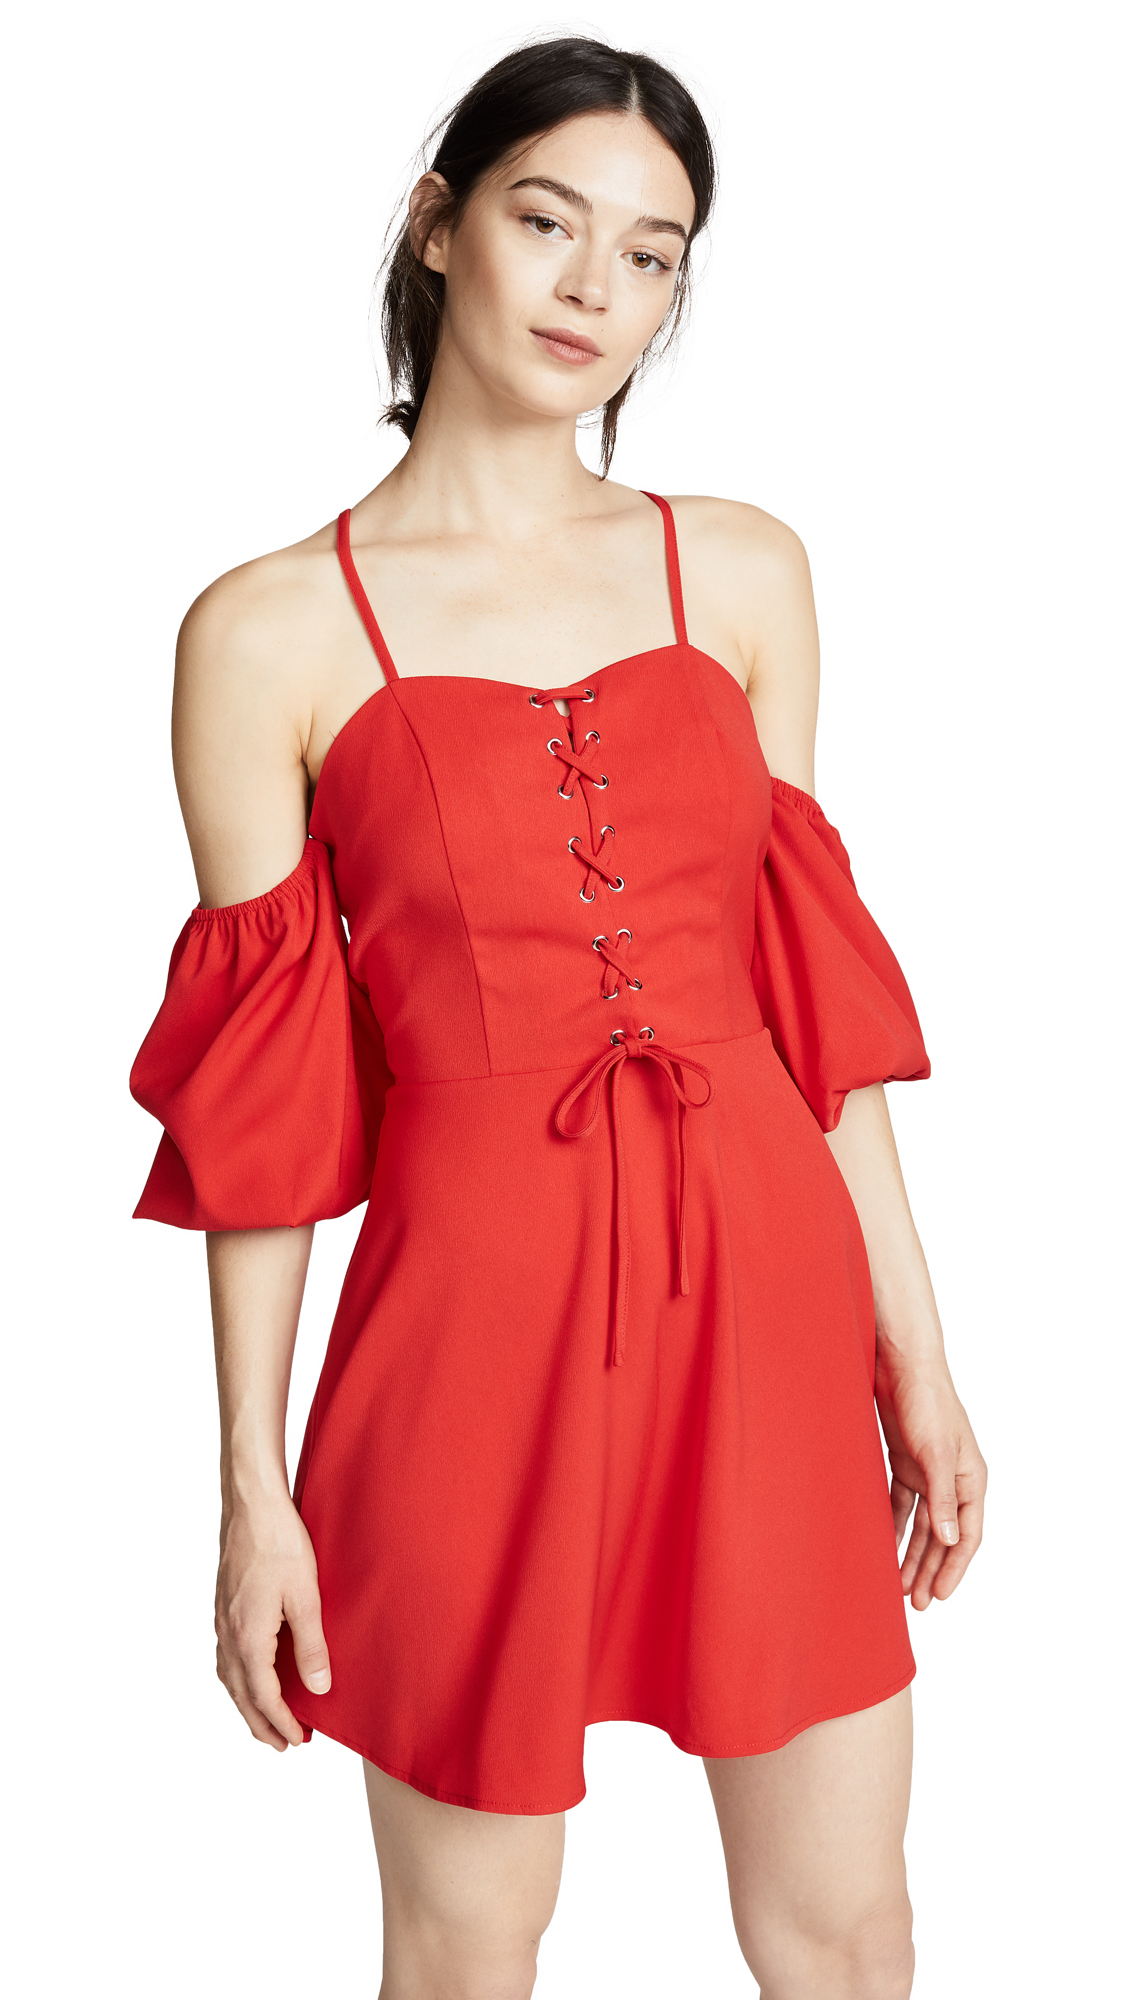 J.O.A. Puff Sleeve Dress In Tomato